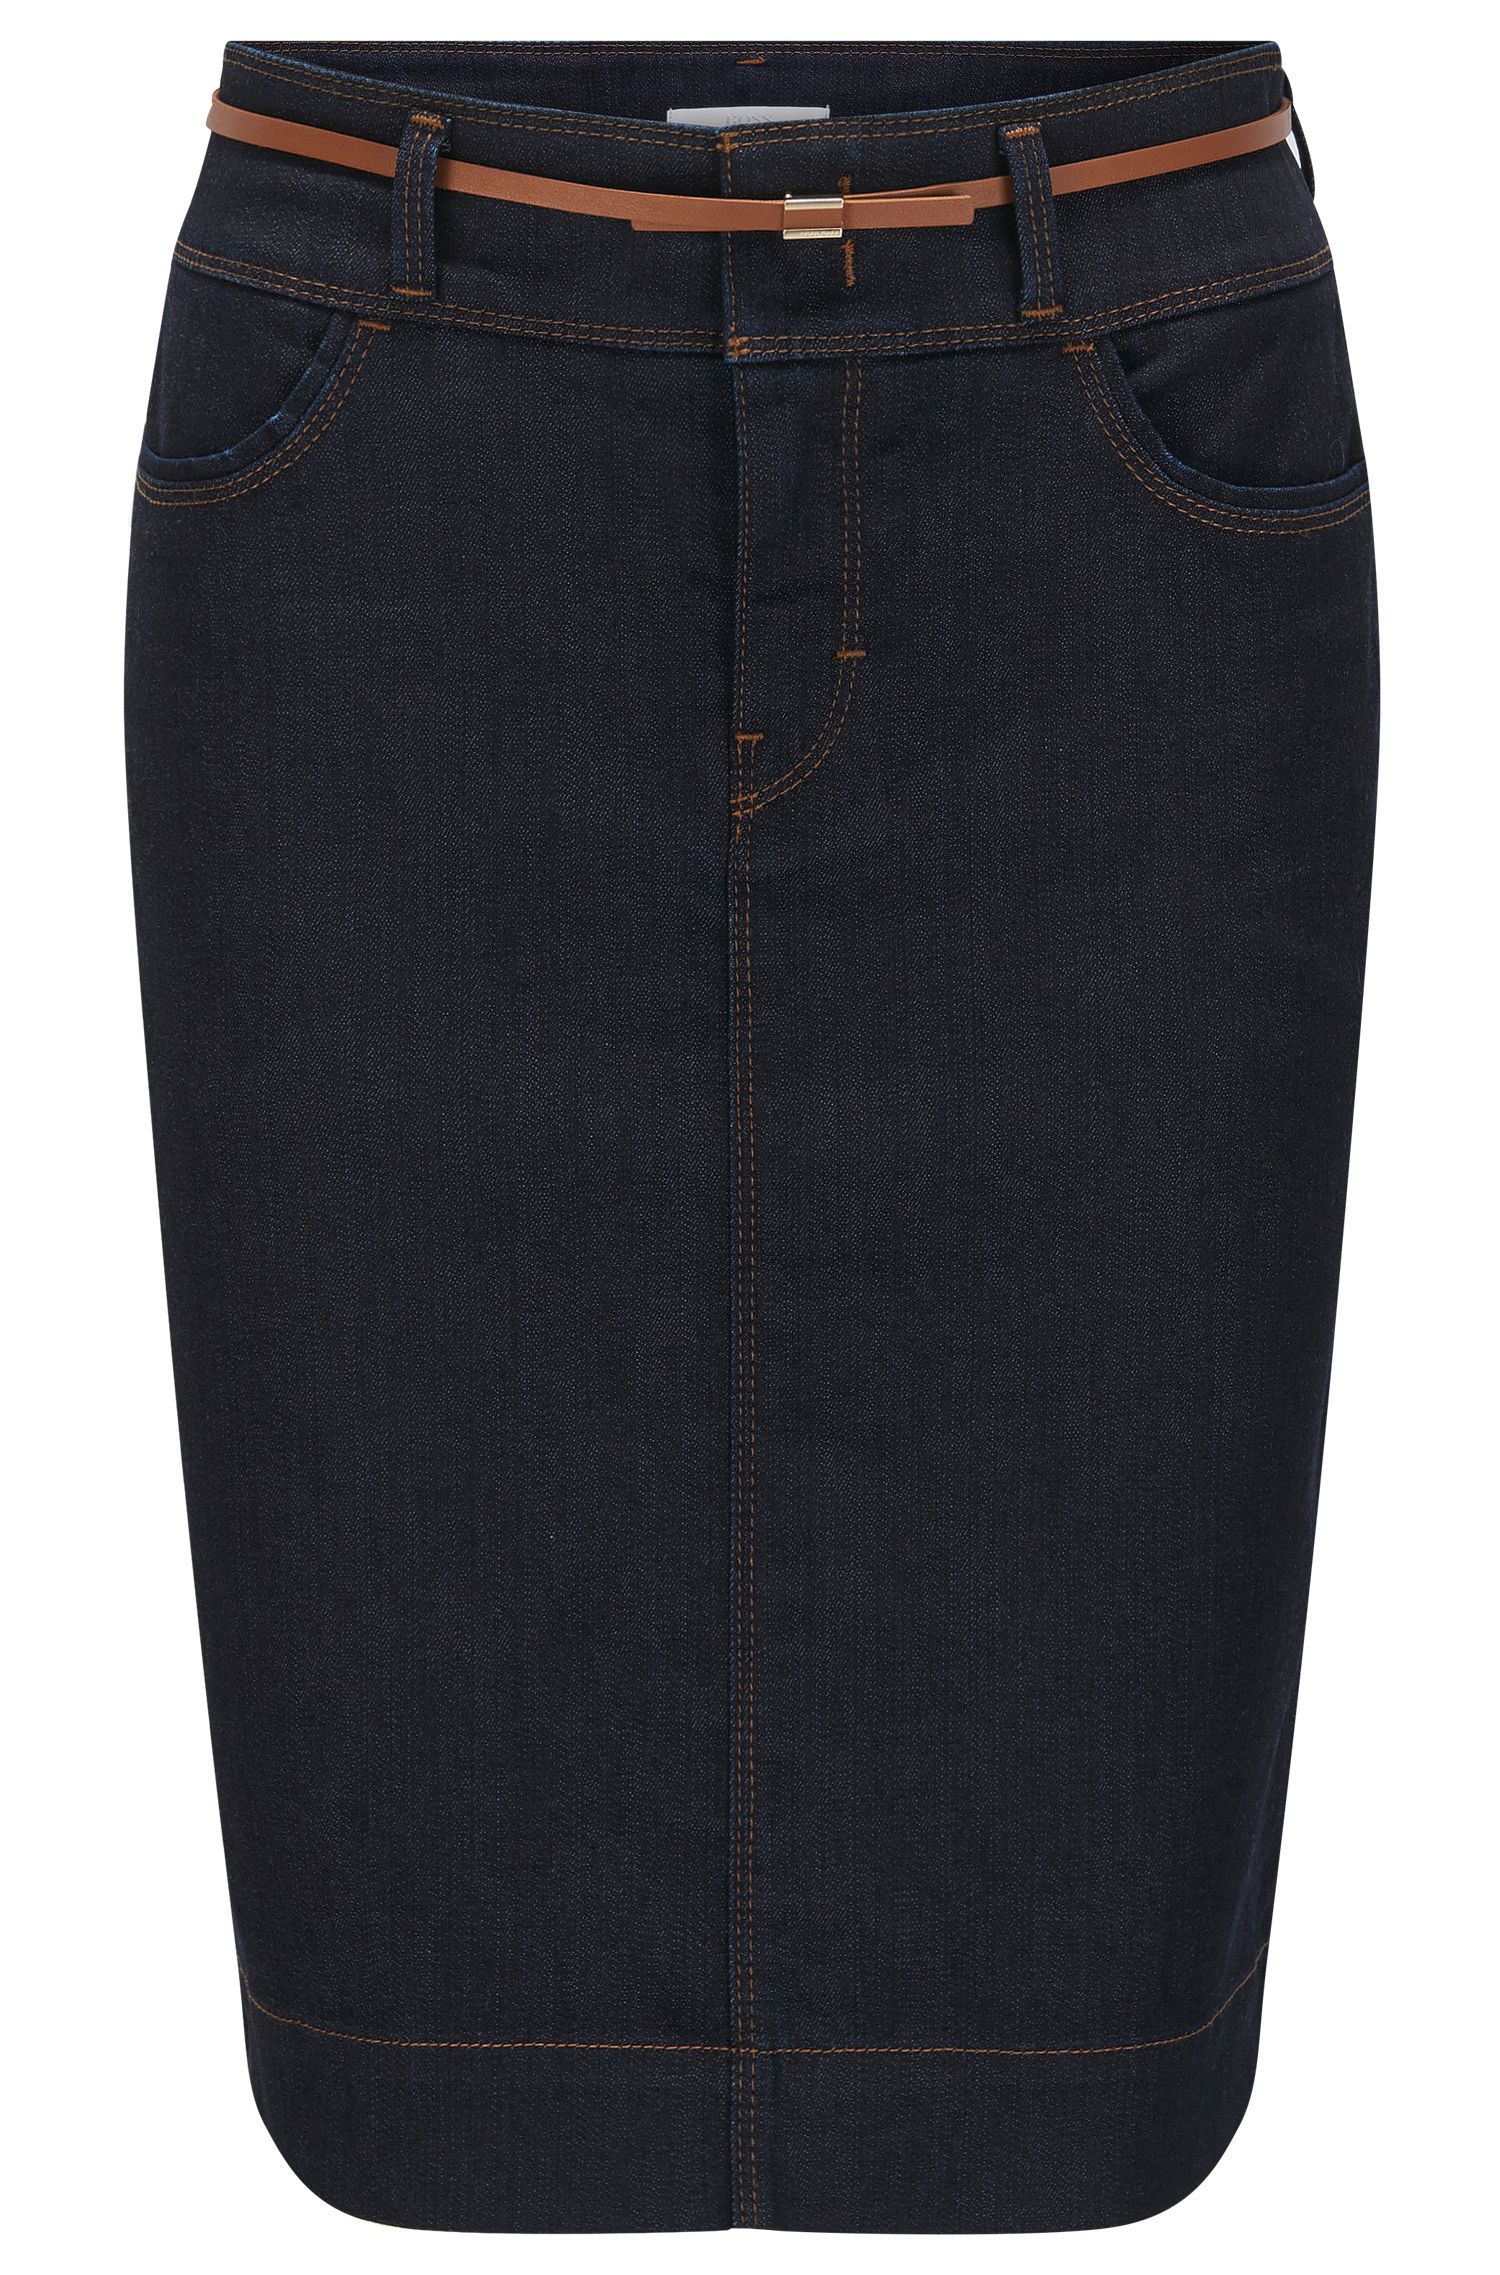 Jupe crayon en denim stretch confortable